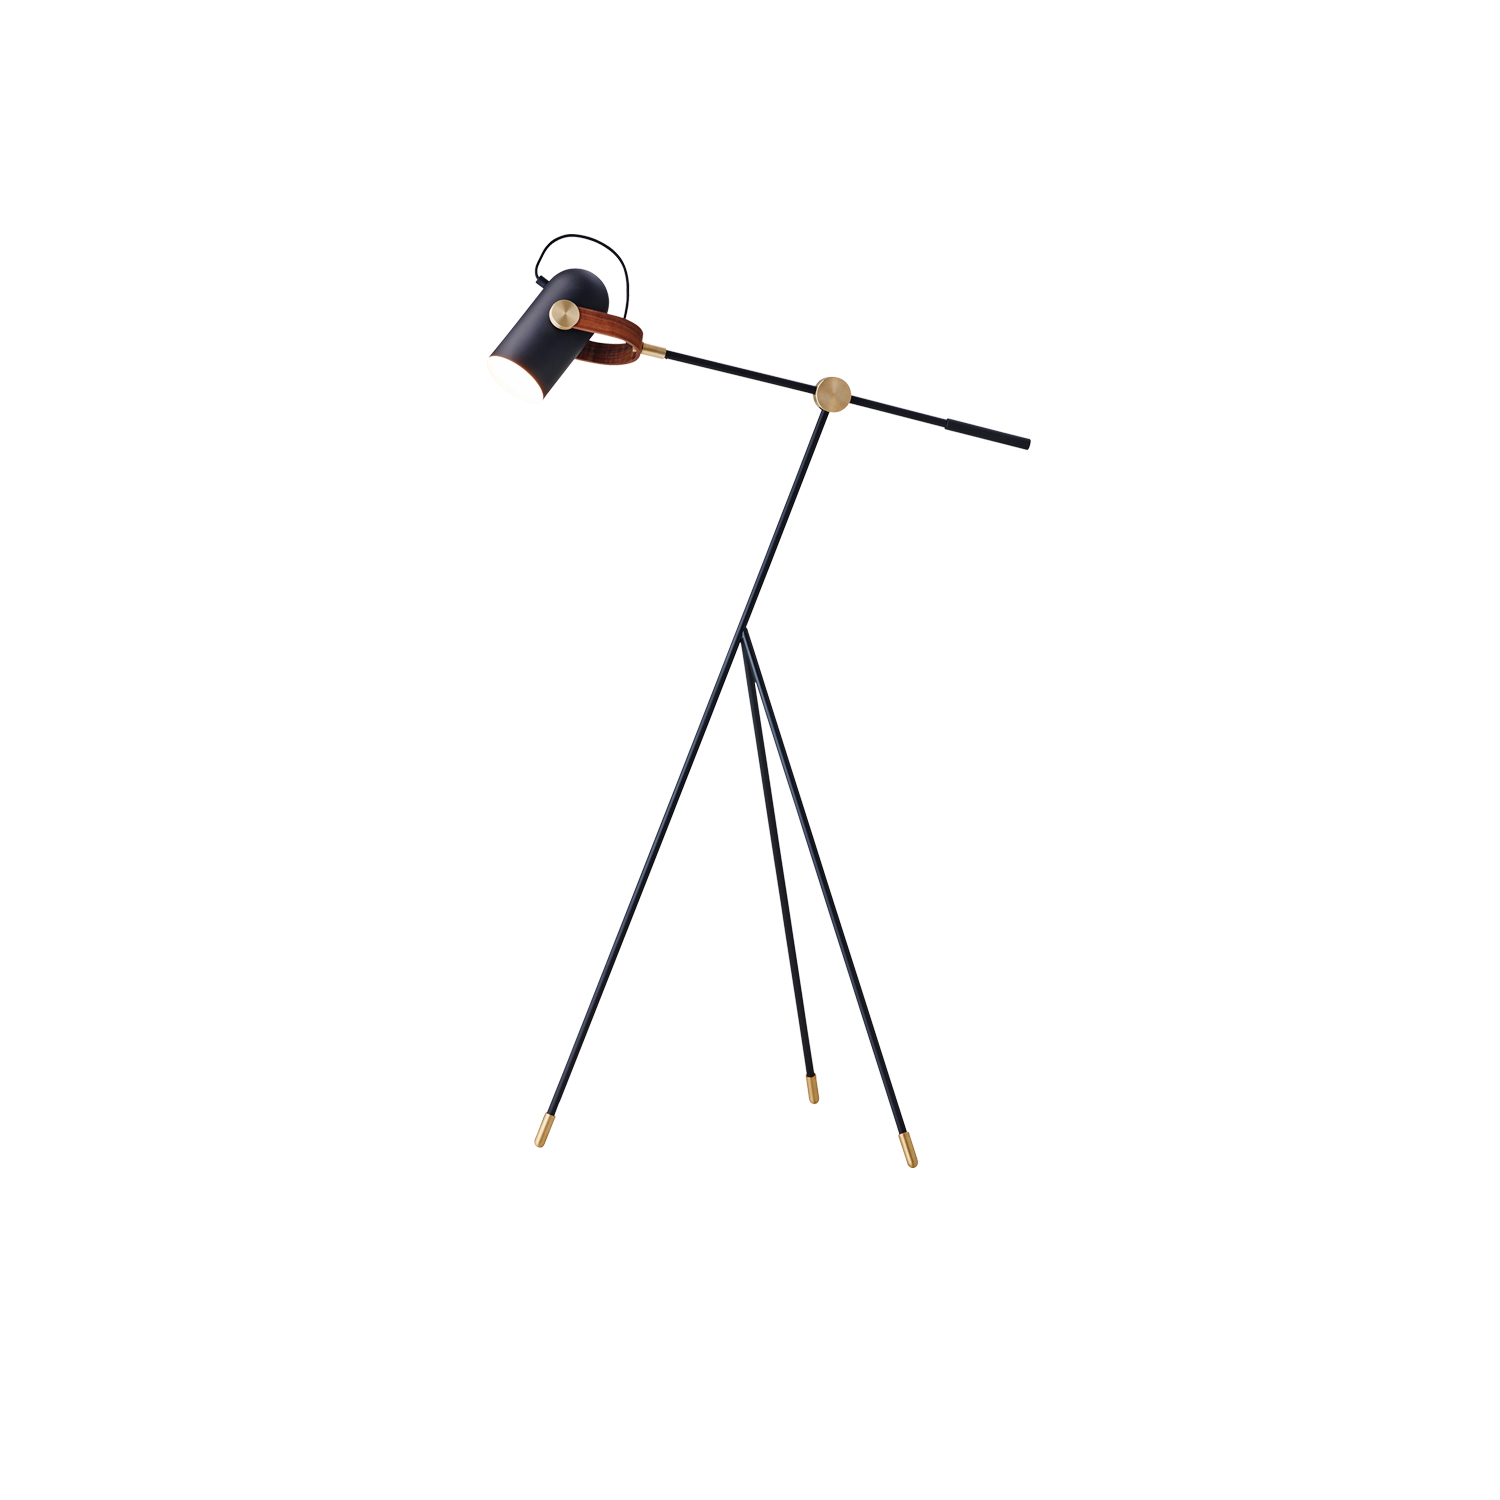 Carronade Low Floor Lamp - This multi-functional floor lamp demonstrates the ingenuity, subtle skills and craftmanship of LE KLINT's latest adaptation of a classic reading lamp. This beautiful modern design with its rotational head is appropriate for any interior wherever it stands.  CARRONADE low floor lamp comes in a black or sand painted aluminium finish with brass or aluminium metal discs and American walnut or oak details. All models are fitted with LED light bulbs.  It is not difficult to see how designer Markus Johansson drew inspiration from 17th-century ship cannons as he created the CARRONADE lamp series. The idea of a small table lamp, with a distinctive but playful shape of a small cannon, was quite a challenge. Realizing gunpowder and cannonballs references by way of modern lighting technology then synchronized with 21st-century contemporary Nordic lighting designs was no simple task but very much a 'Eureka' moment.    Matter of Stuff